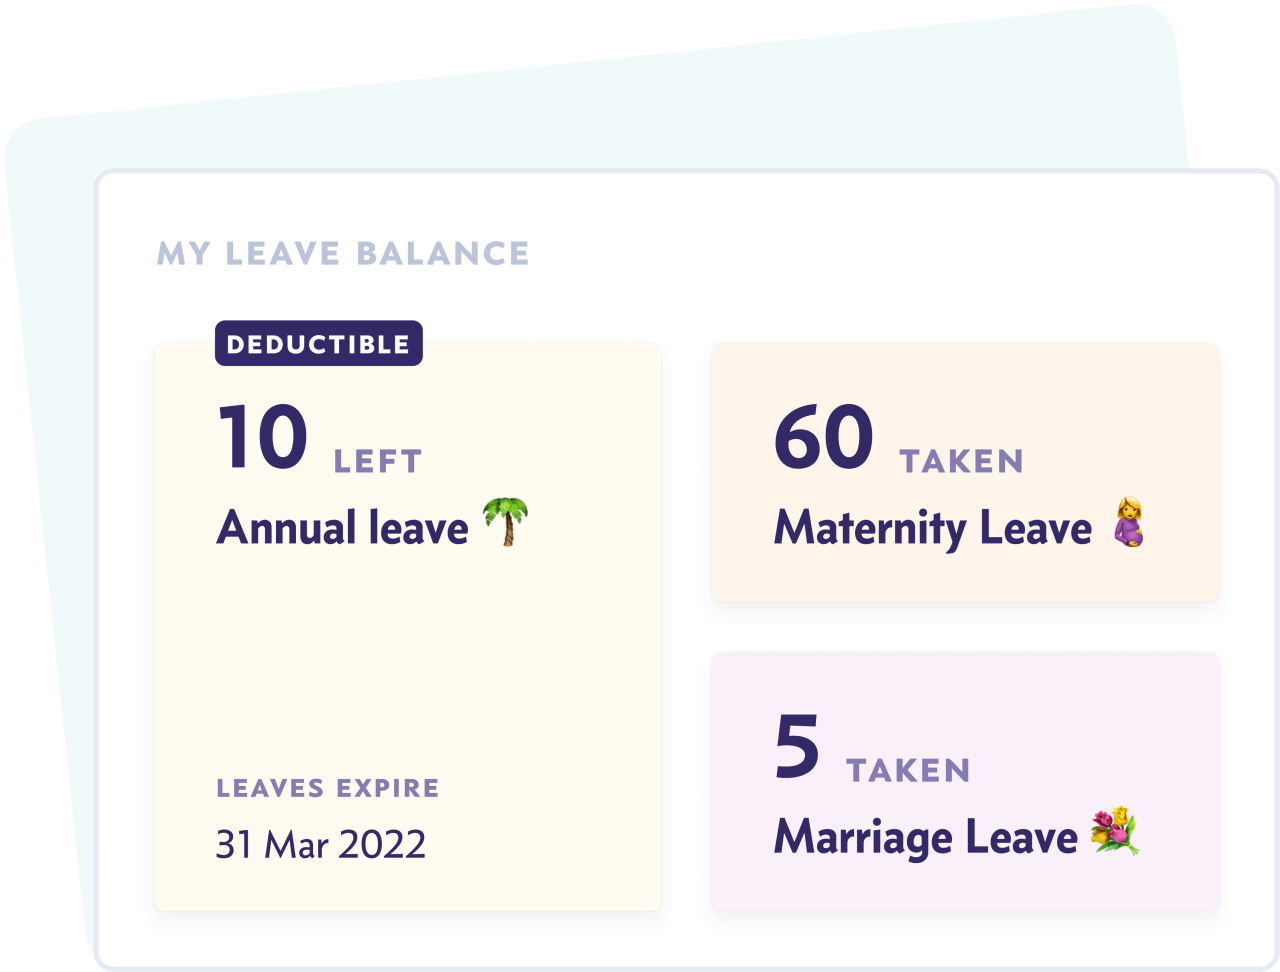 Make individual leave balances accessible to everyone to help them plan their time off better and reduce the burden on admins and HR.